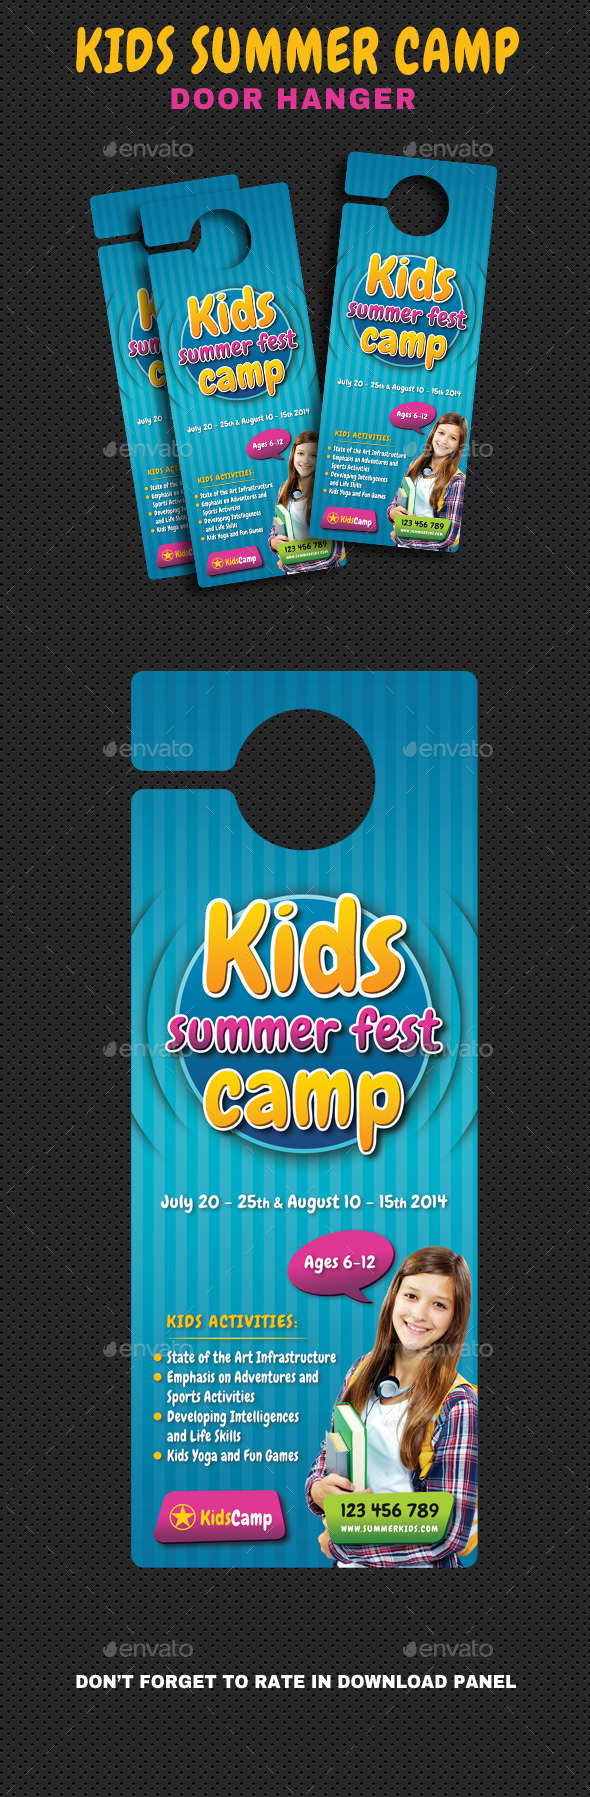 Kids Summer Camp Door Hanger V01